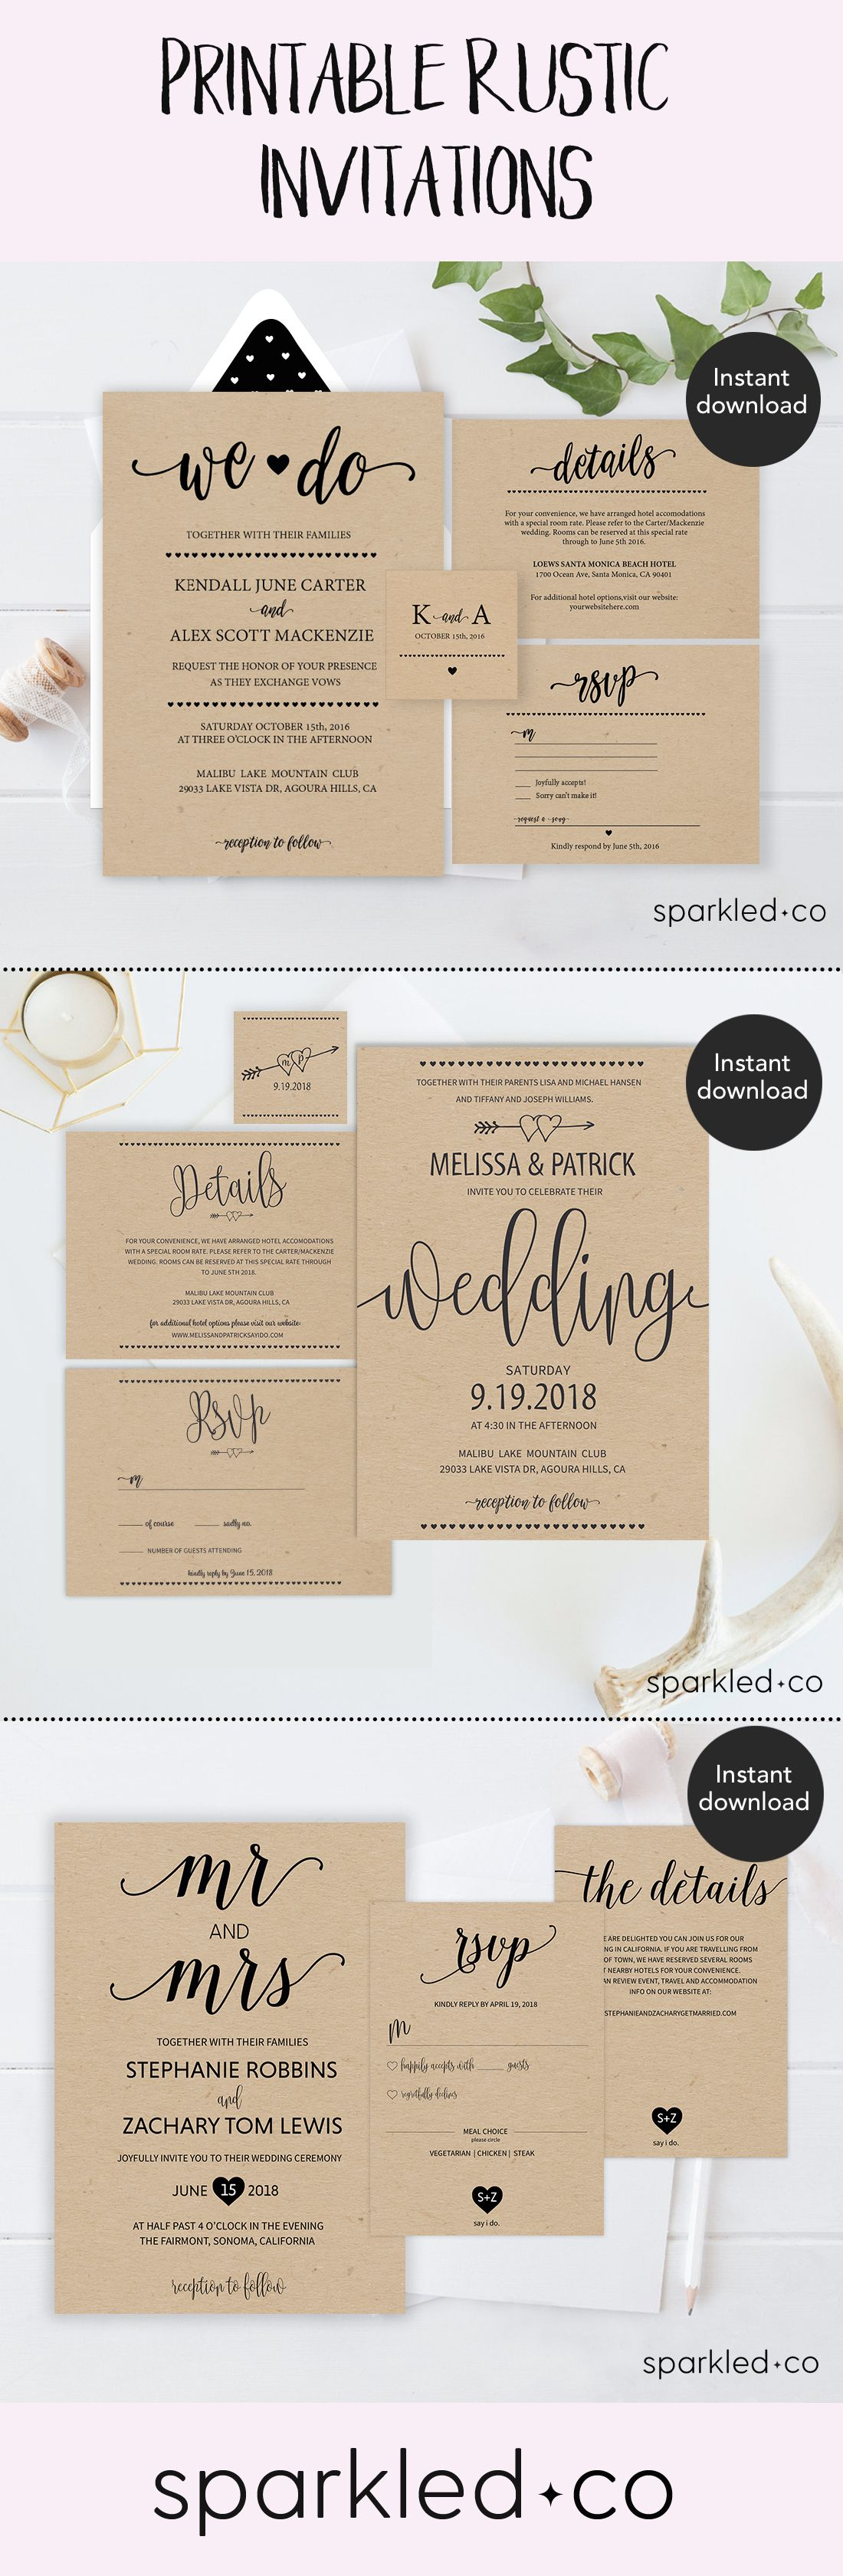 Affordable diy rustic wedding invitations febii pinterest affordable diy rustic wedding invitations solutioingenieria Choice Image